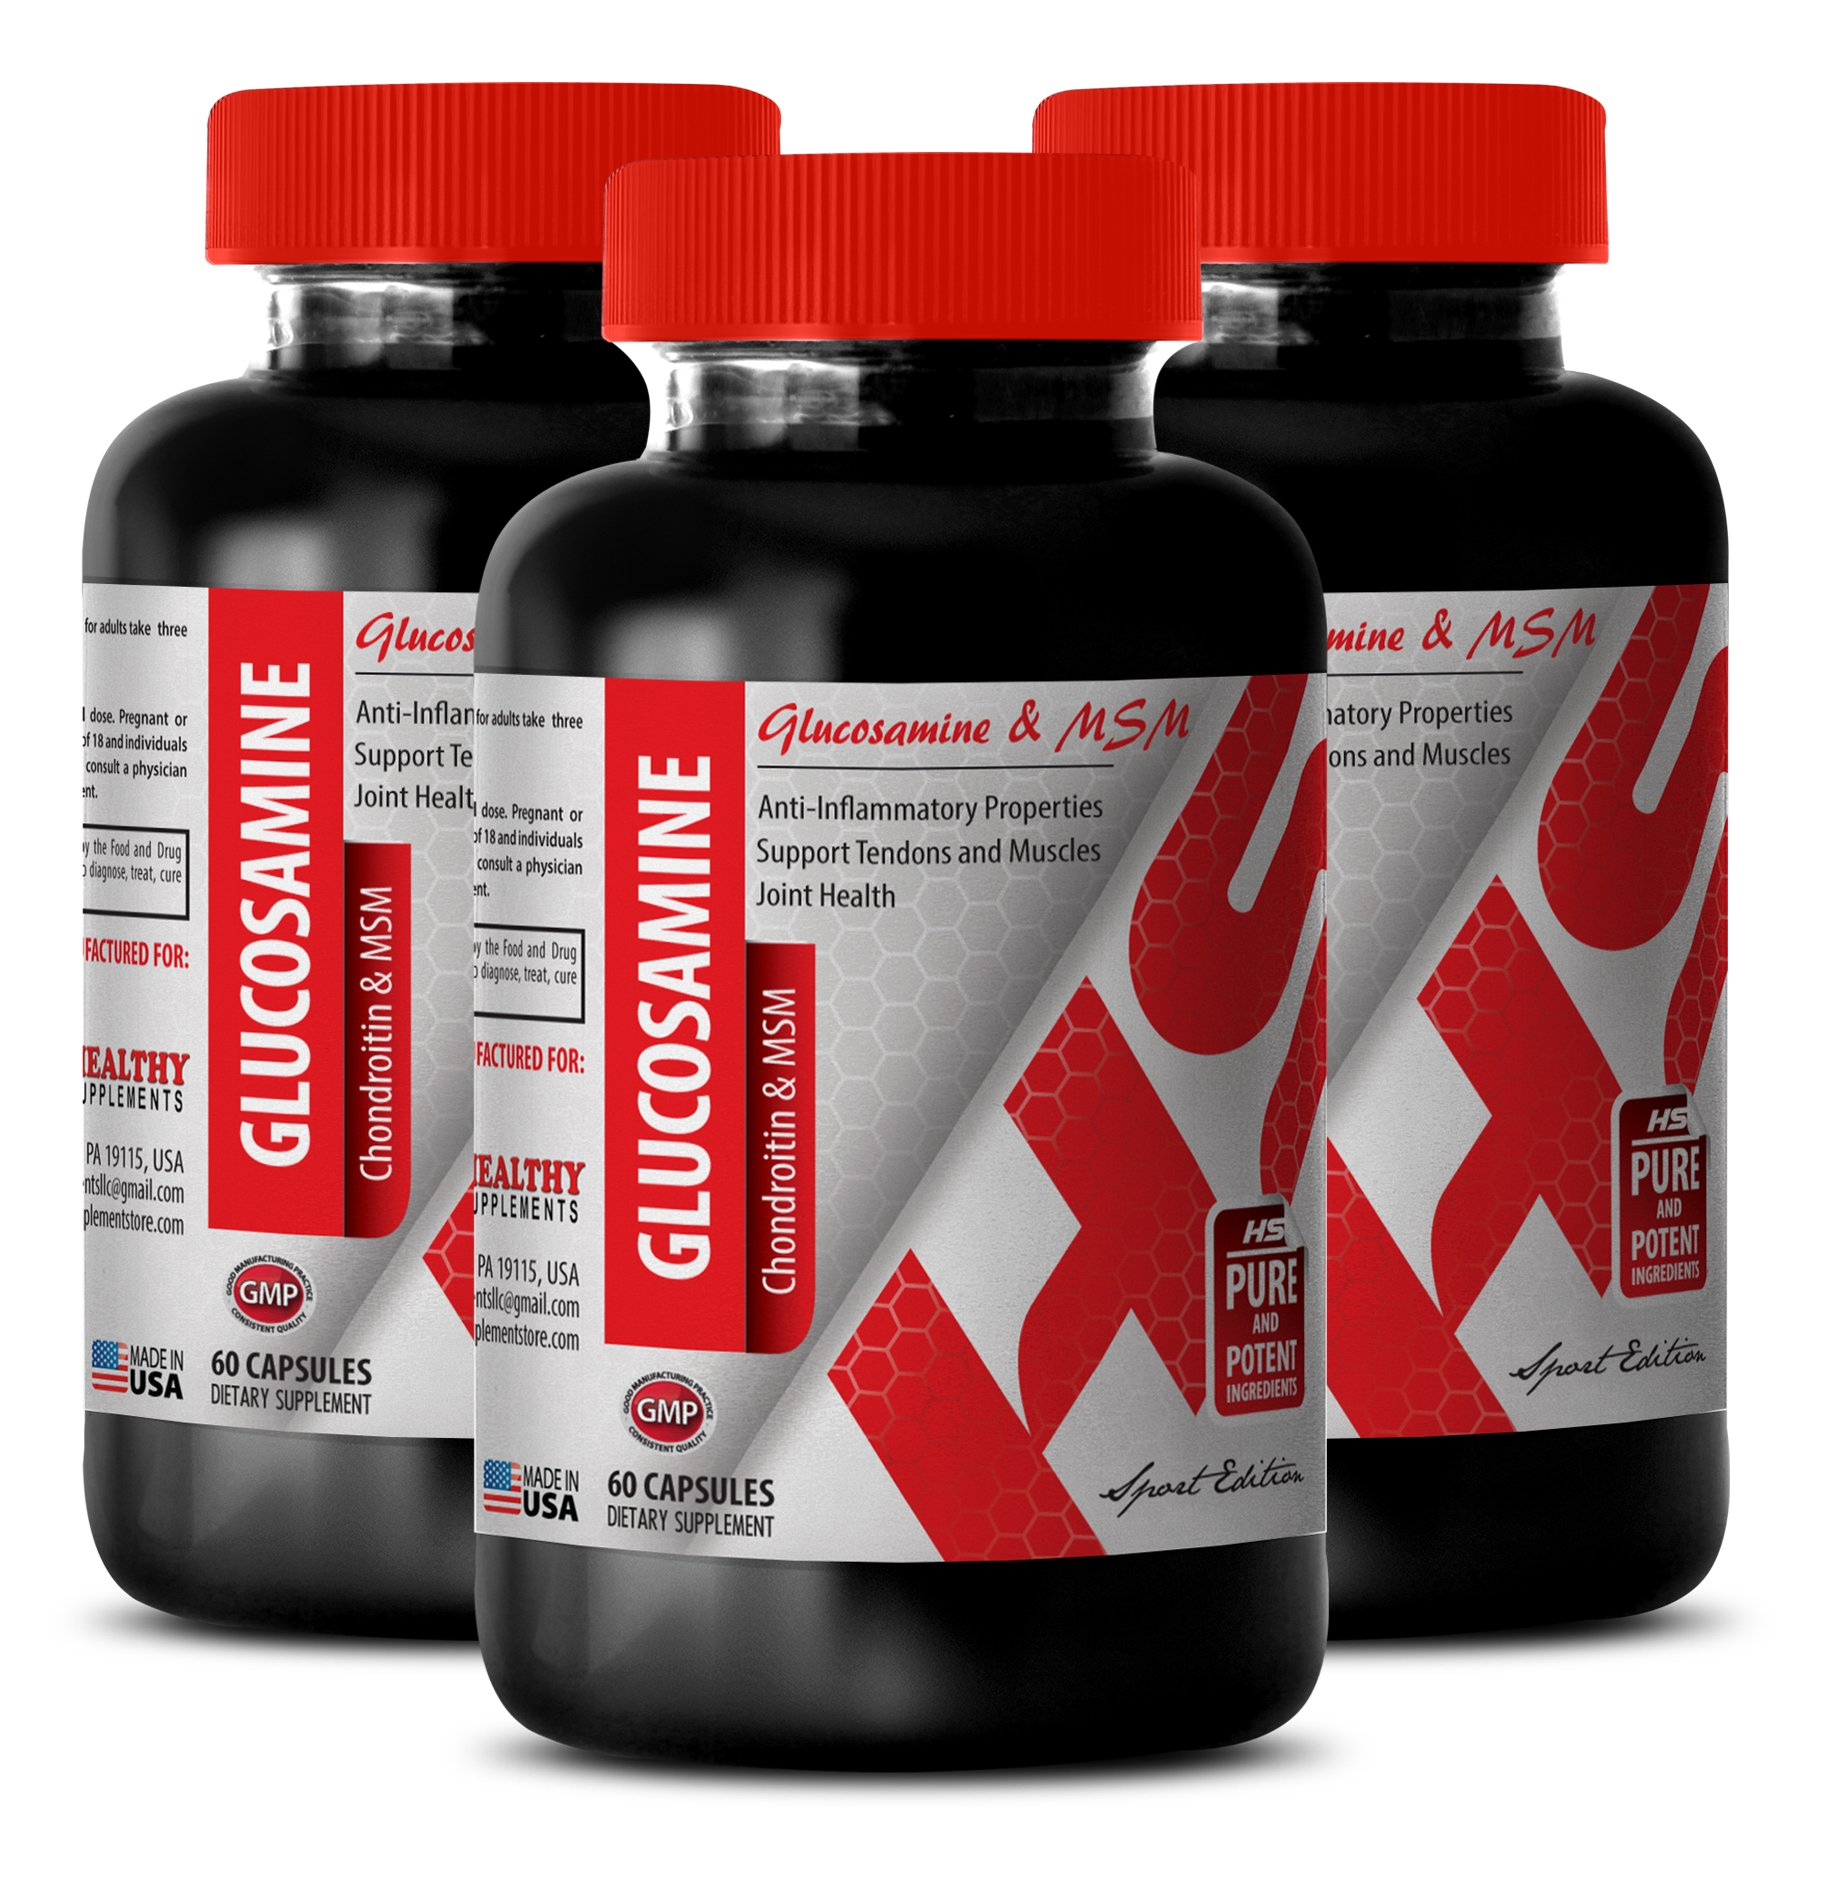 Glucosamine capsules - GLUCOSAMINE AND MSM 3230 MG - support bones and joints (3 Bottles)